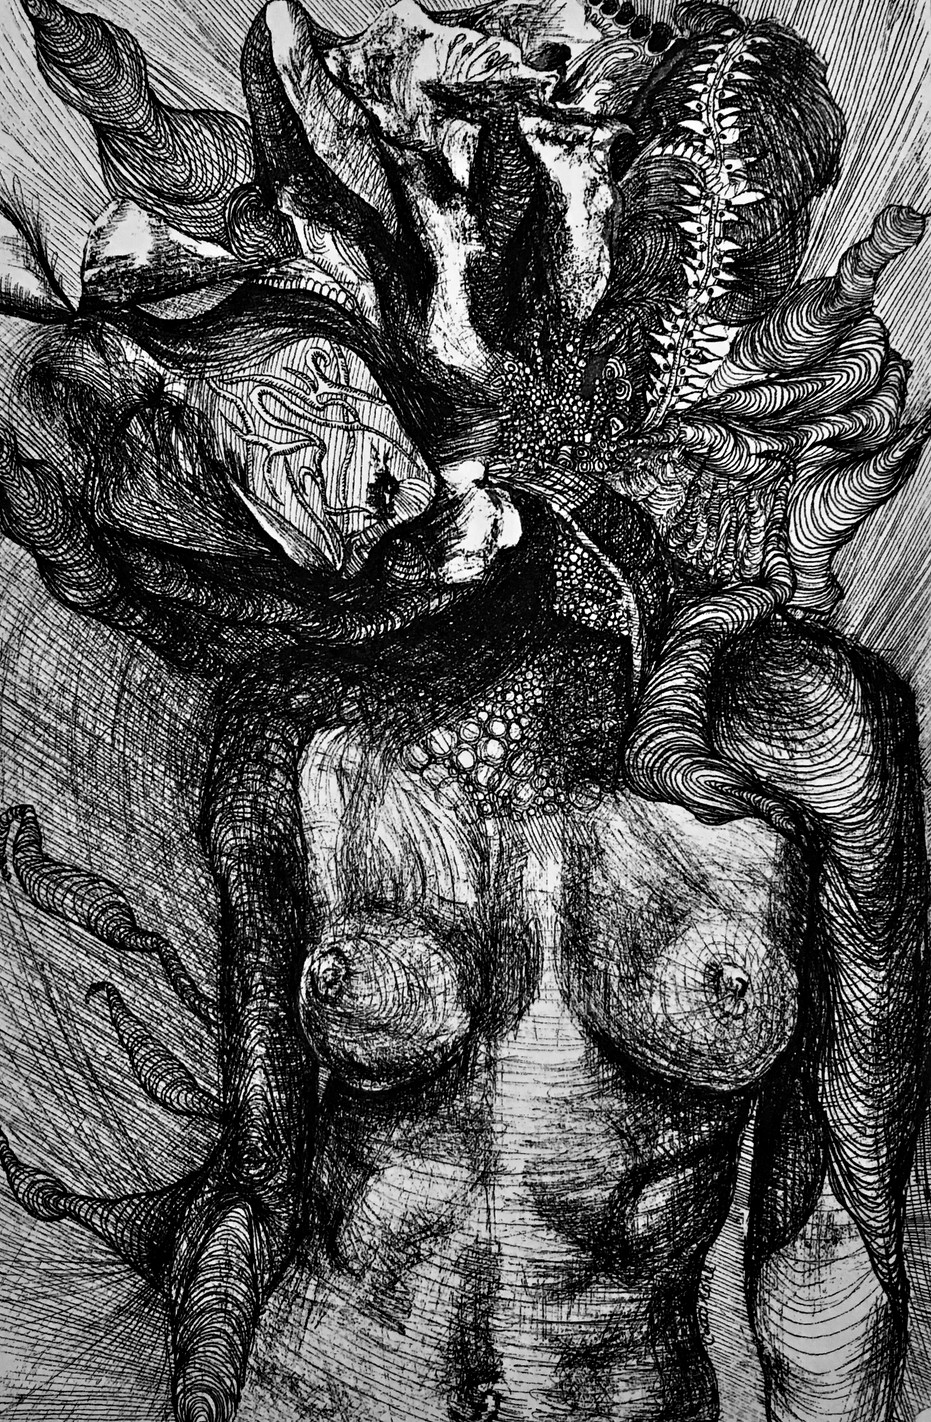 Caitie Kohl Desnudo 5.5x8.5in Ink on watercolor paper 2017